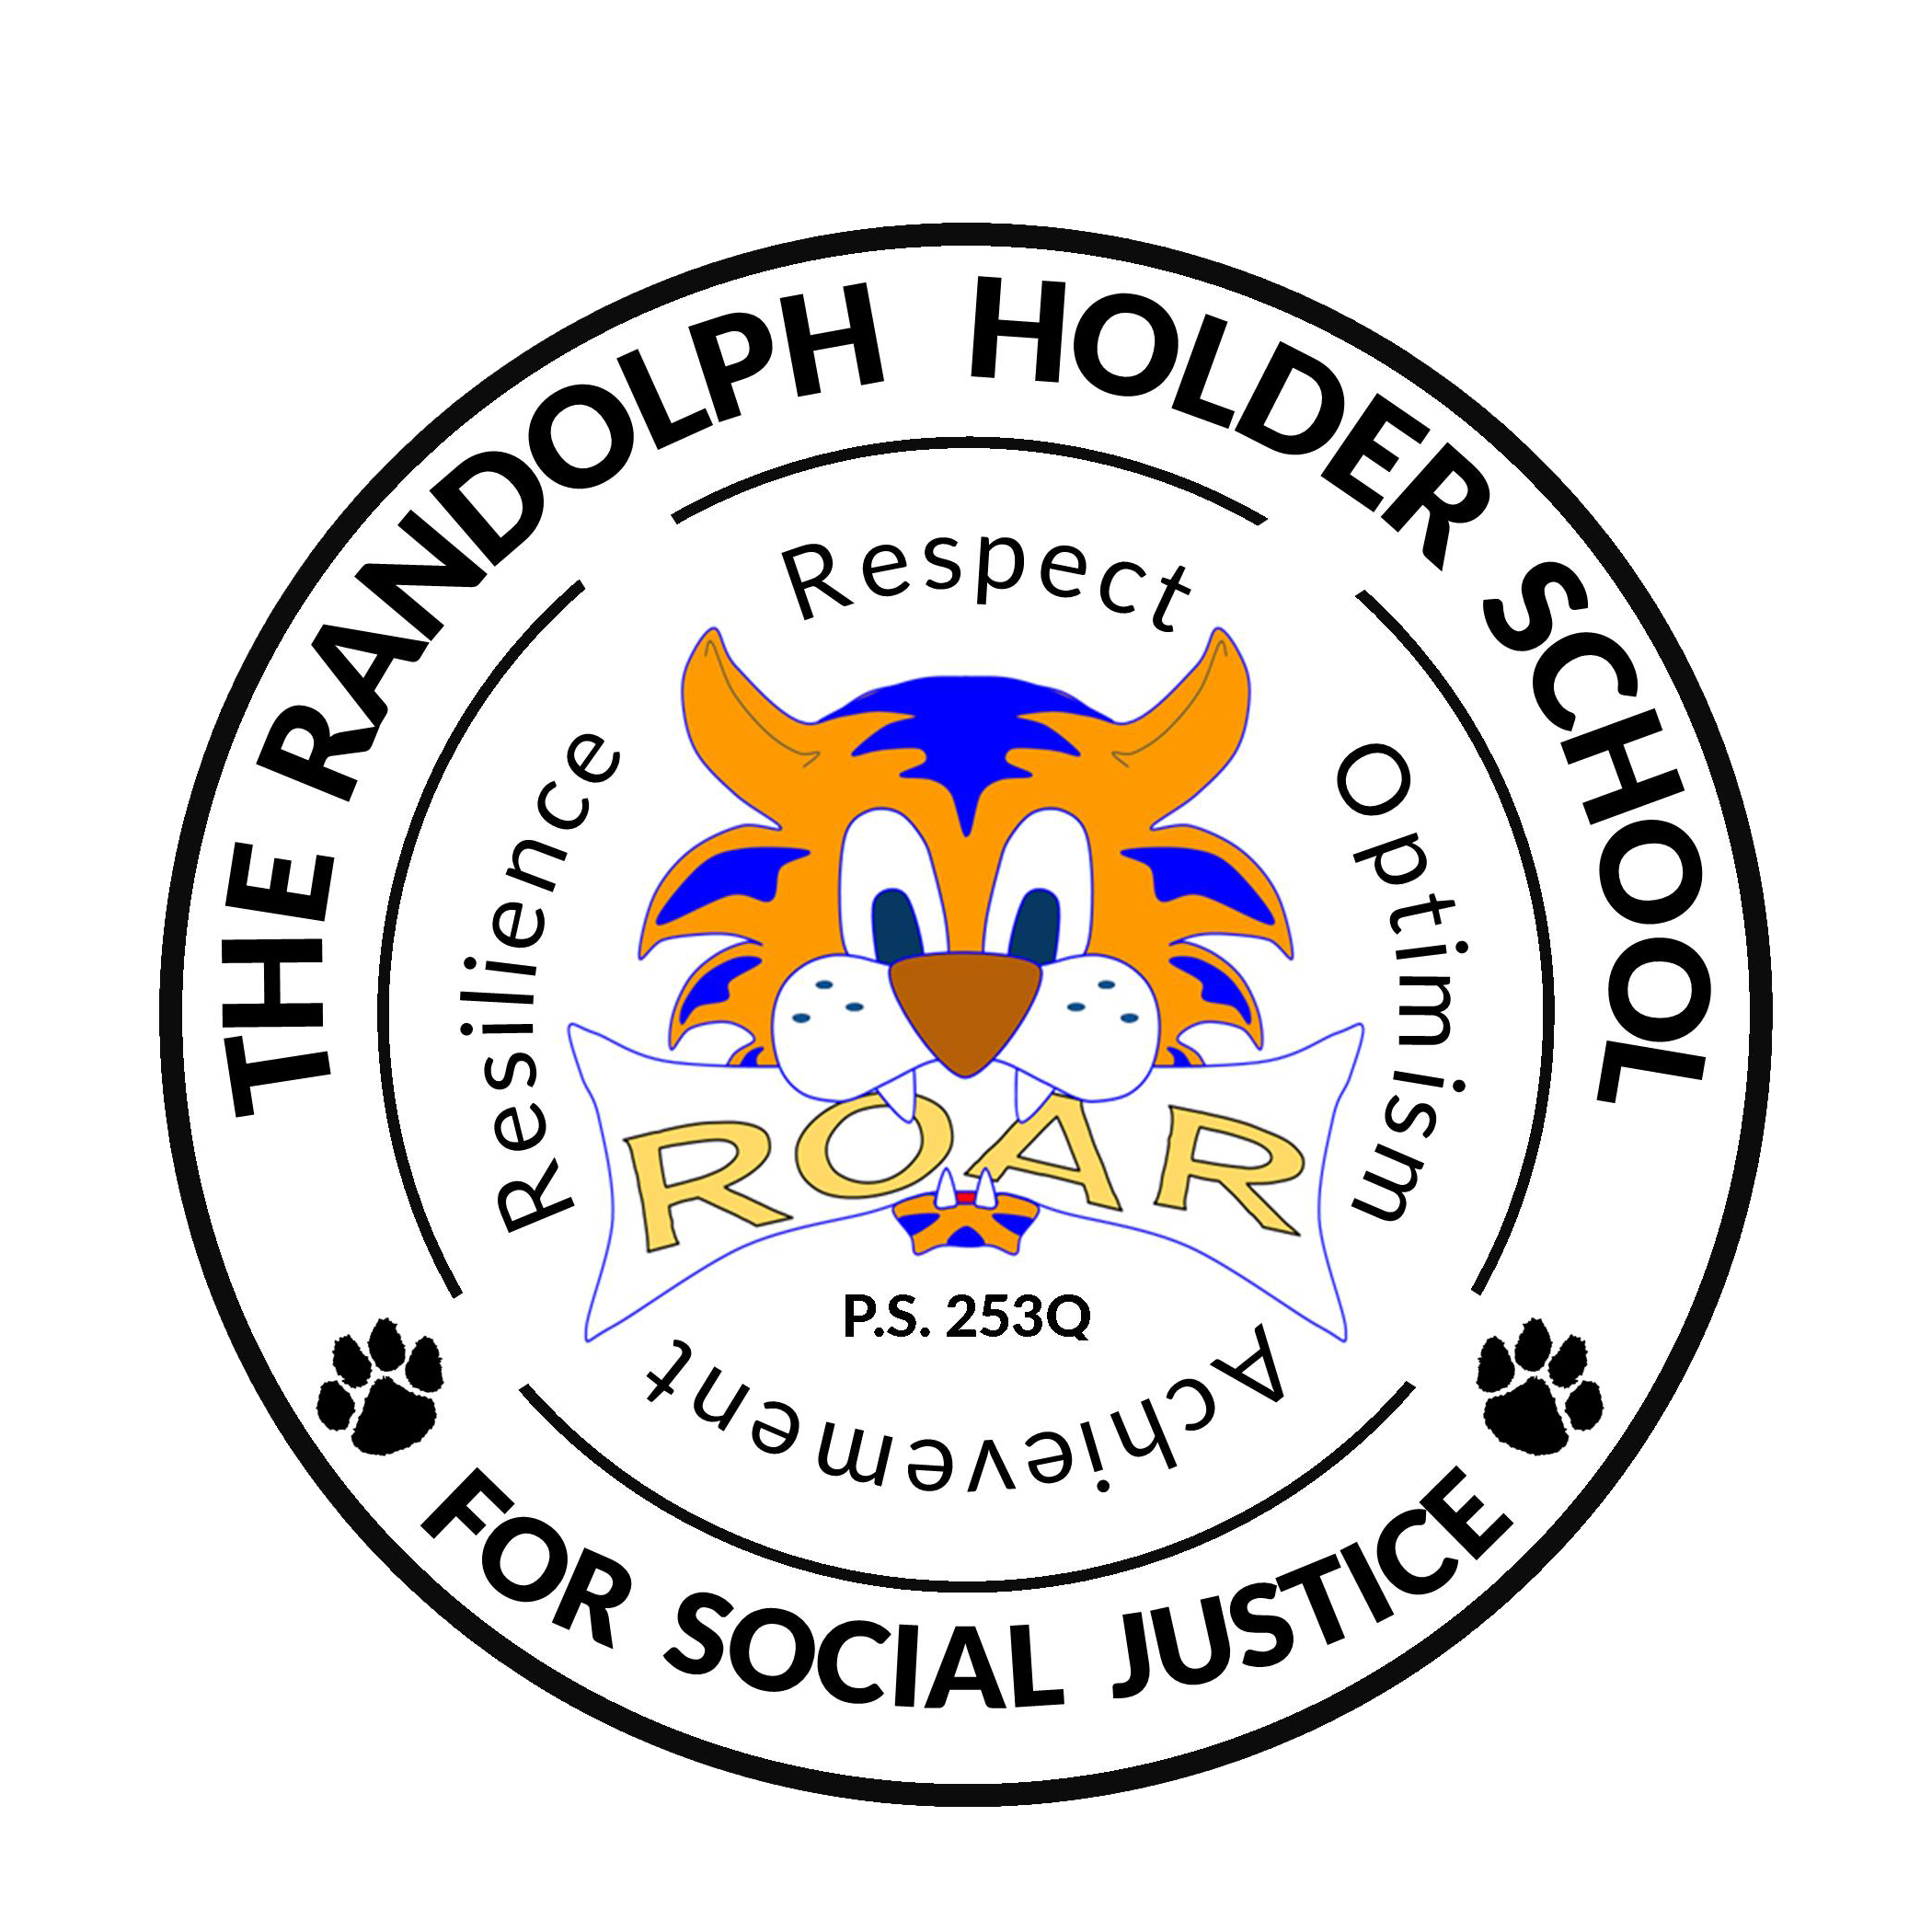 The Randolph Holder School for Social Justice (P.S. 253Q) Home Page